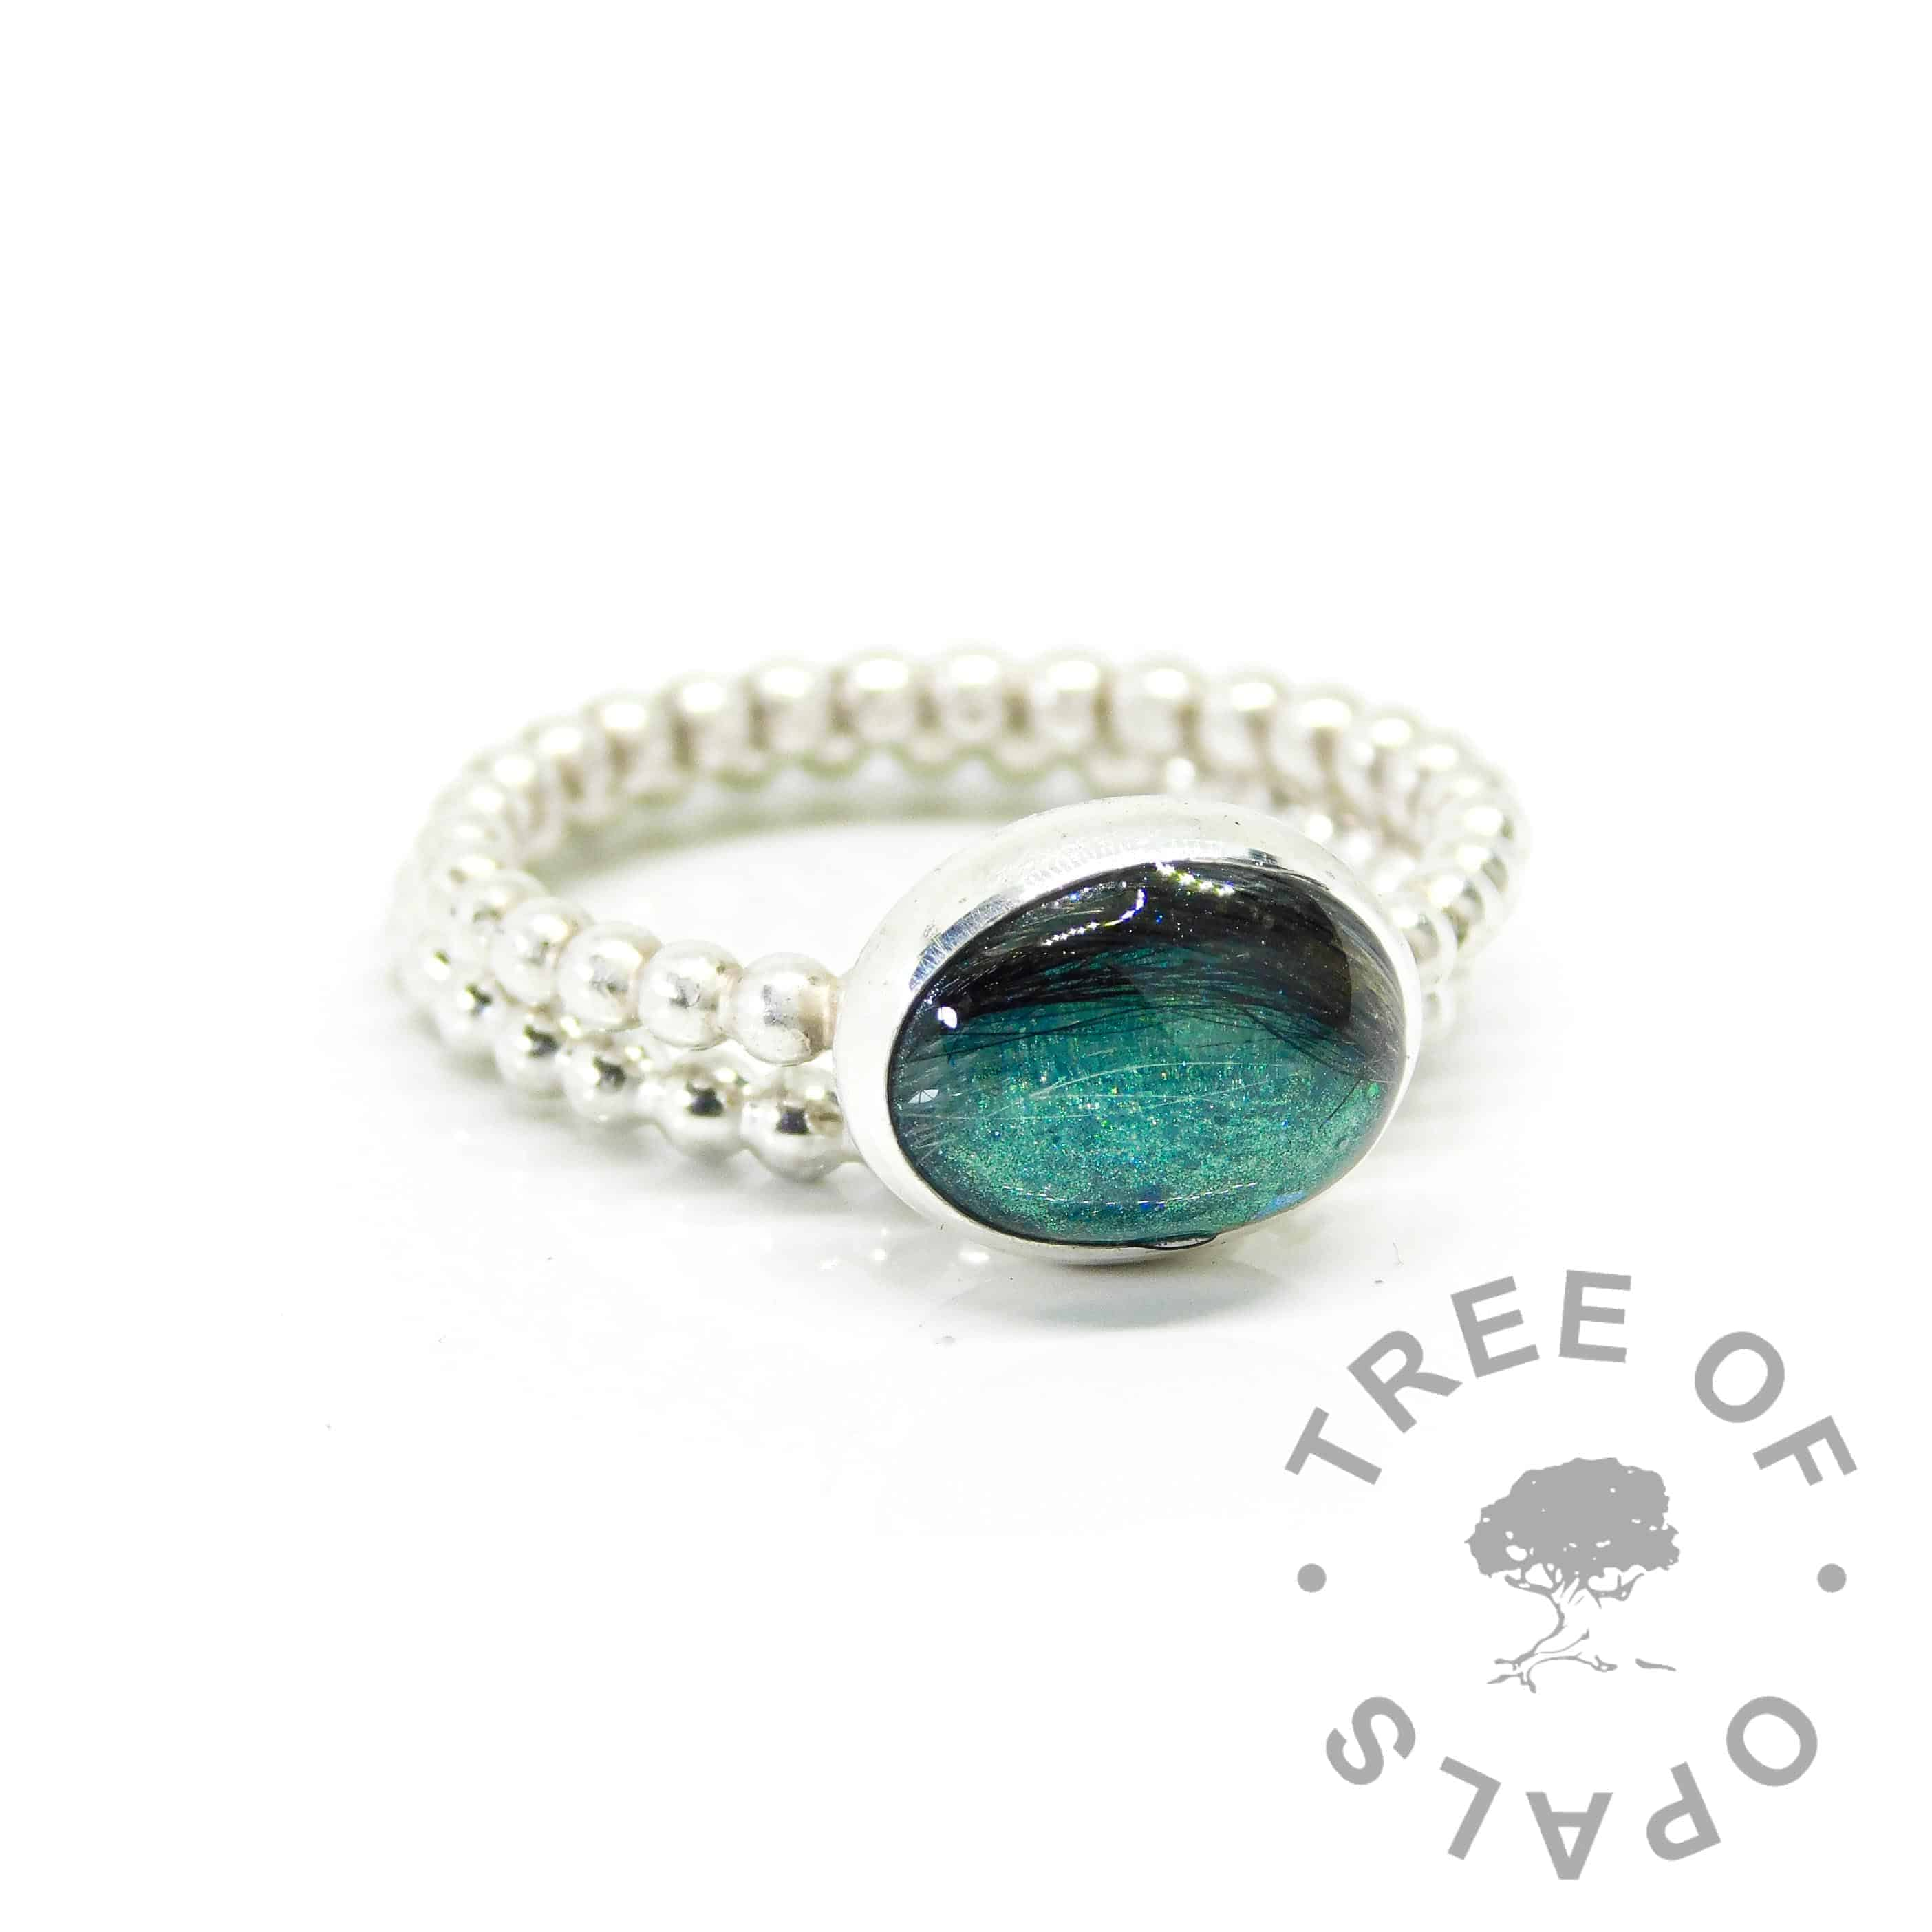 Hair ring on bubble band with mermaid teal resin sparkle mix, shown with bubble band stacking ring